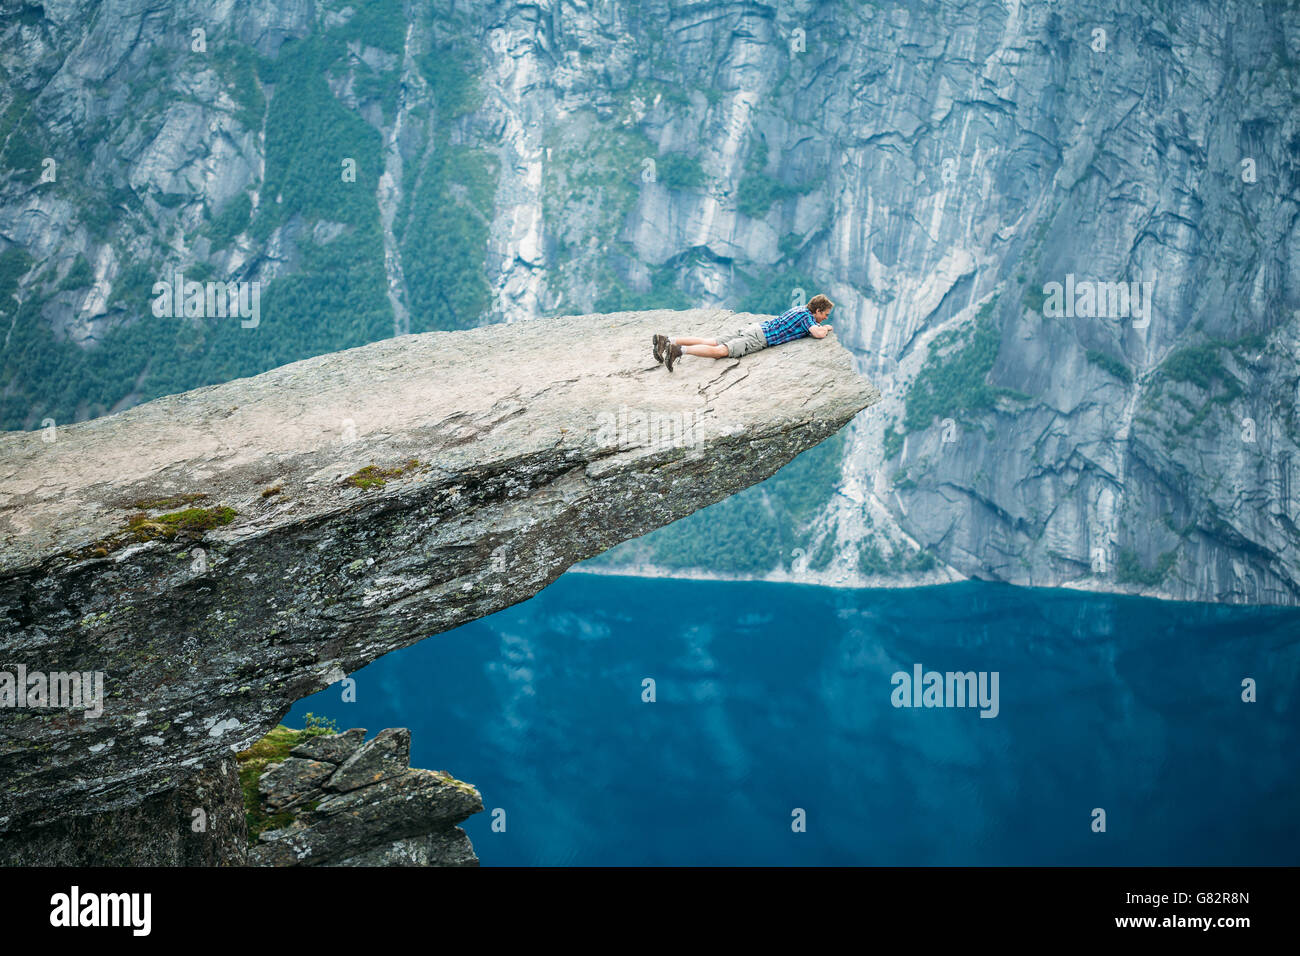 Odda, Norway - August 04, 2014: Young Man On Rock Clings To The Edge Of A Cliff And Looking Down In The Mountains - Stock Image